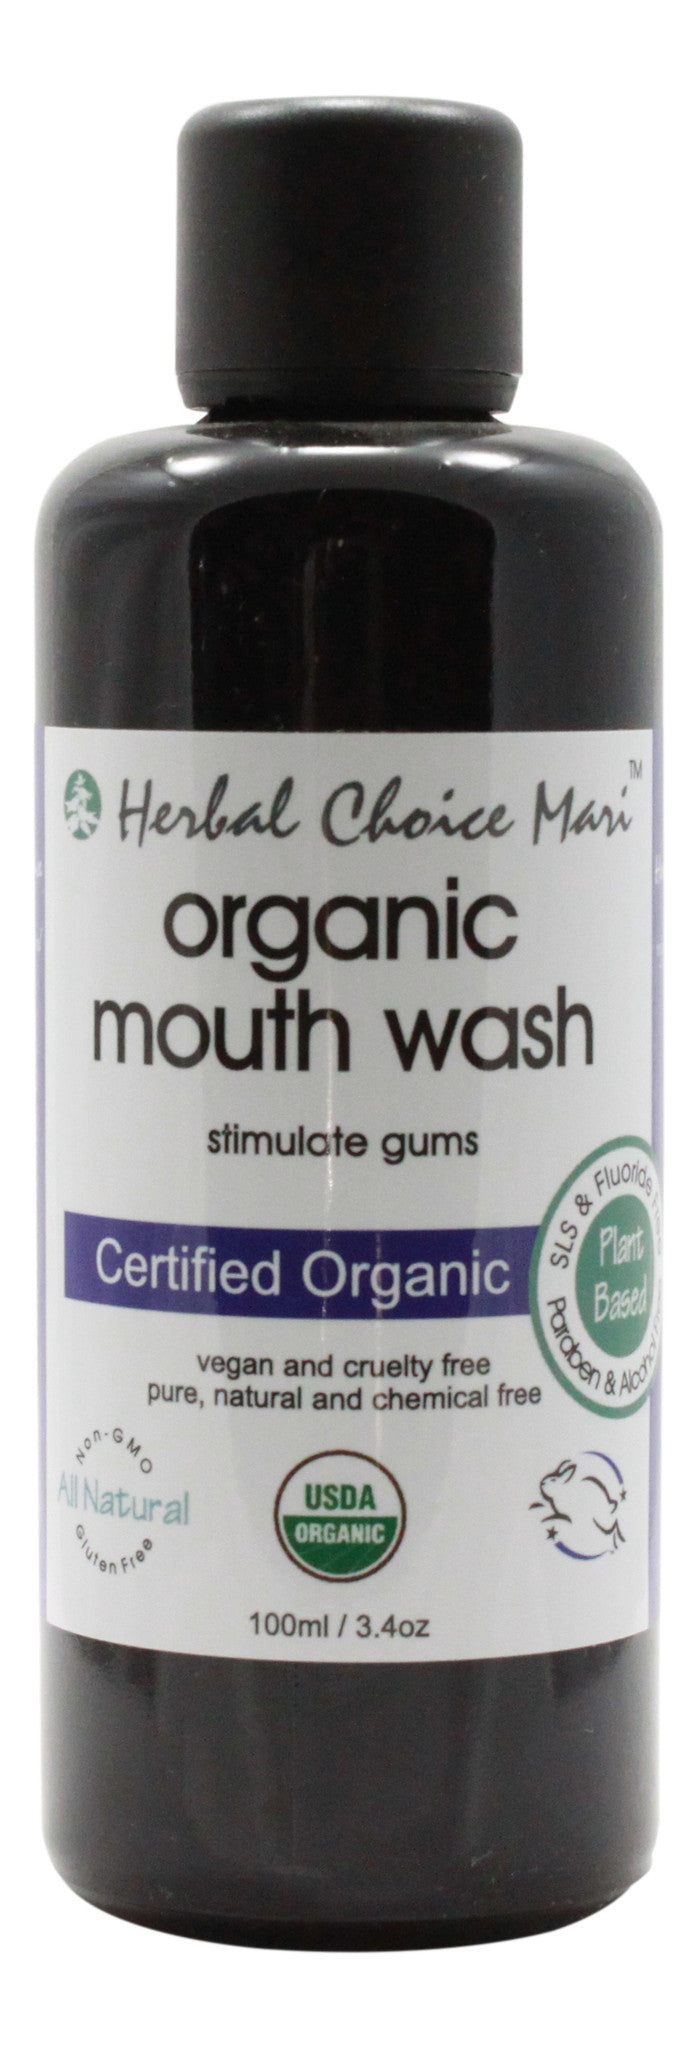 Organic Mouth Wash - 3.4 oz Bottle - Front